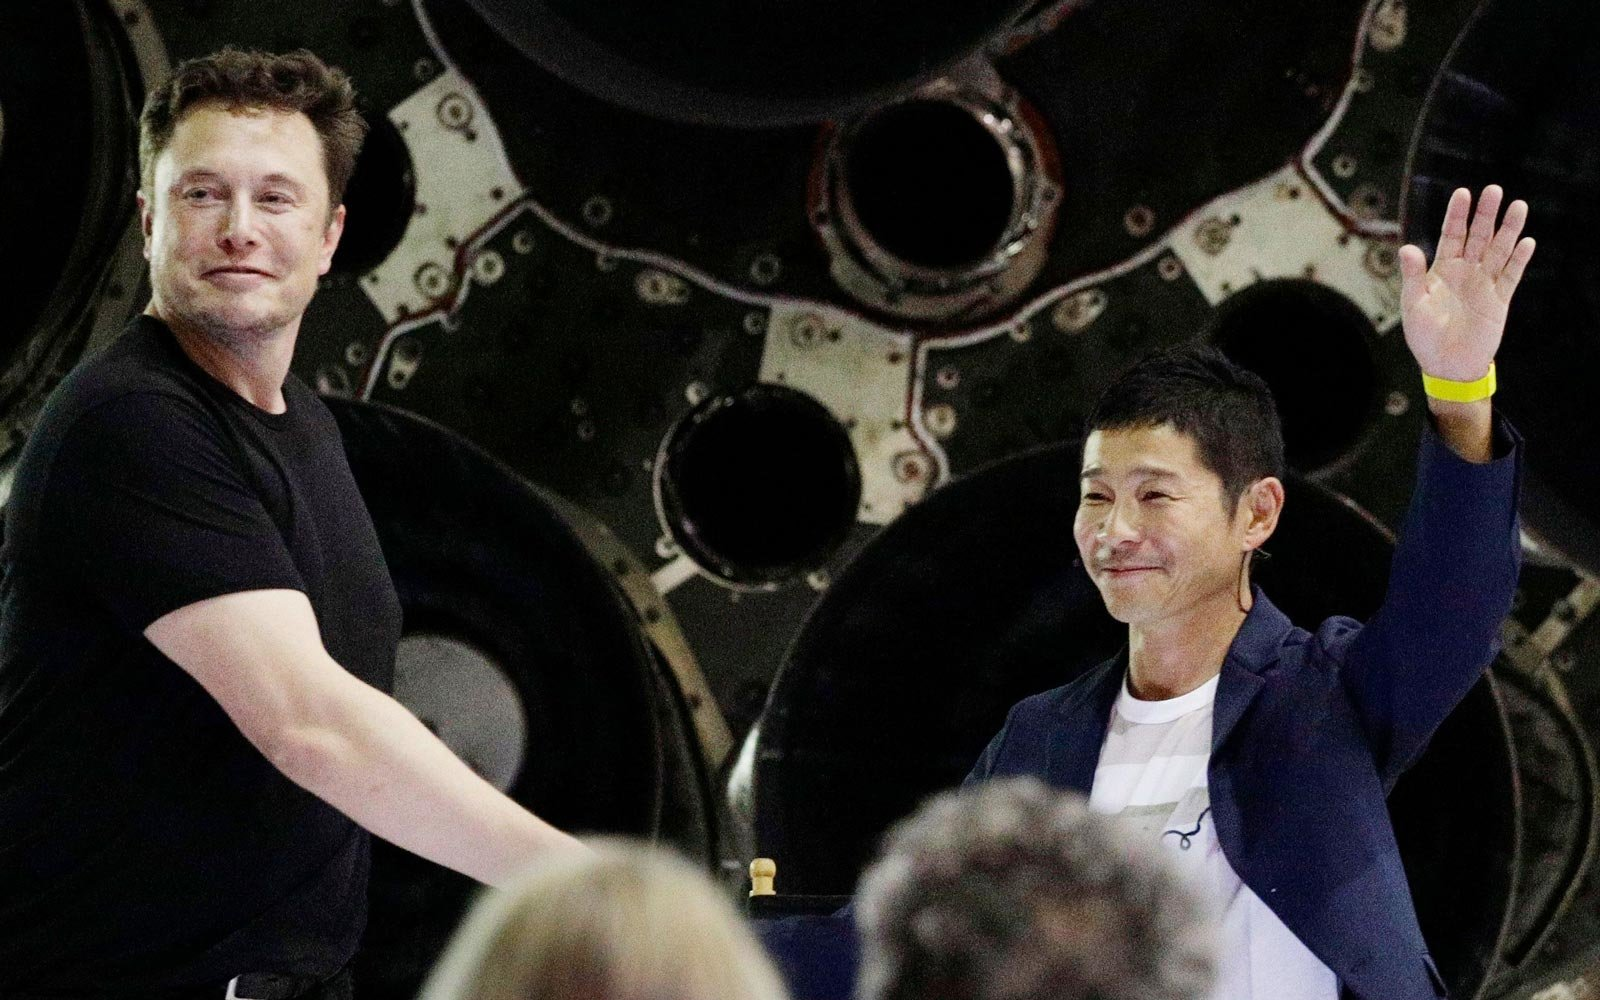 SpaceX founder and chief executive Elon Musk left shakes hands with Japanese billionaire Yusaku Maezawa right after announcing him as the first private passenger on a trip around the moon